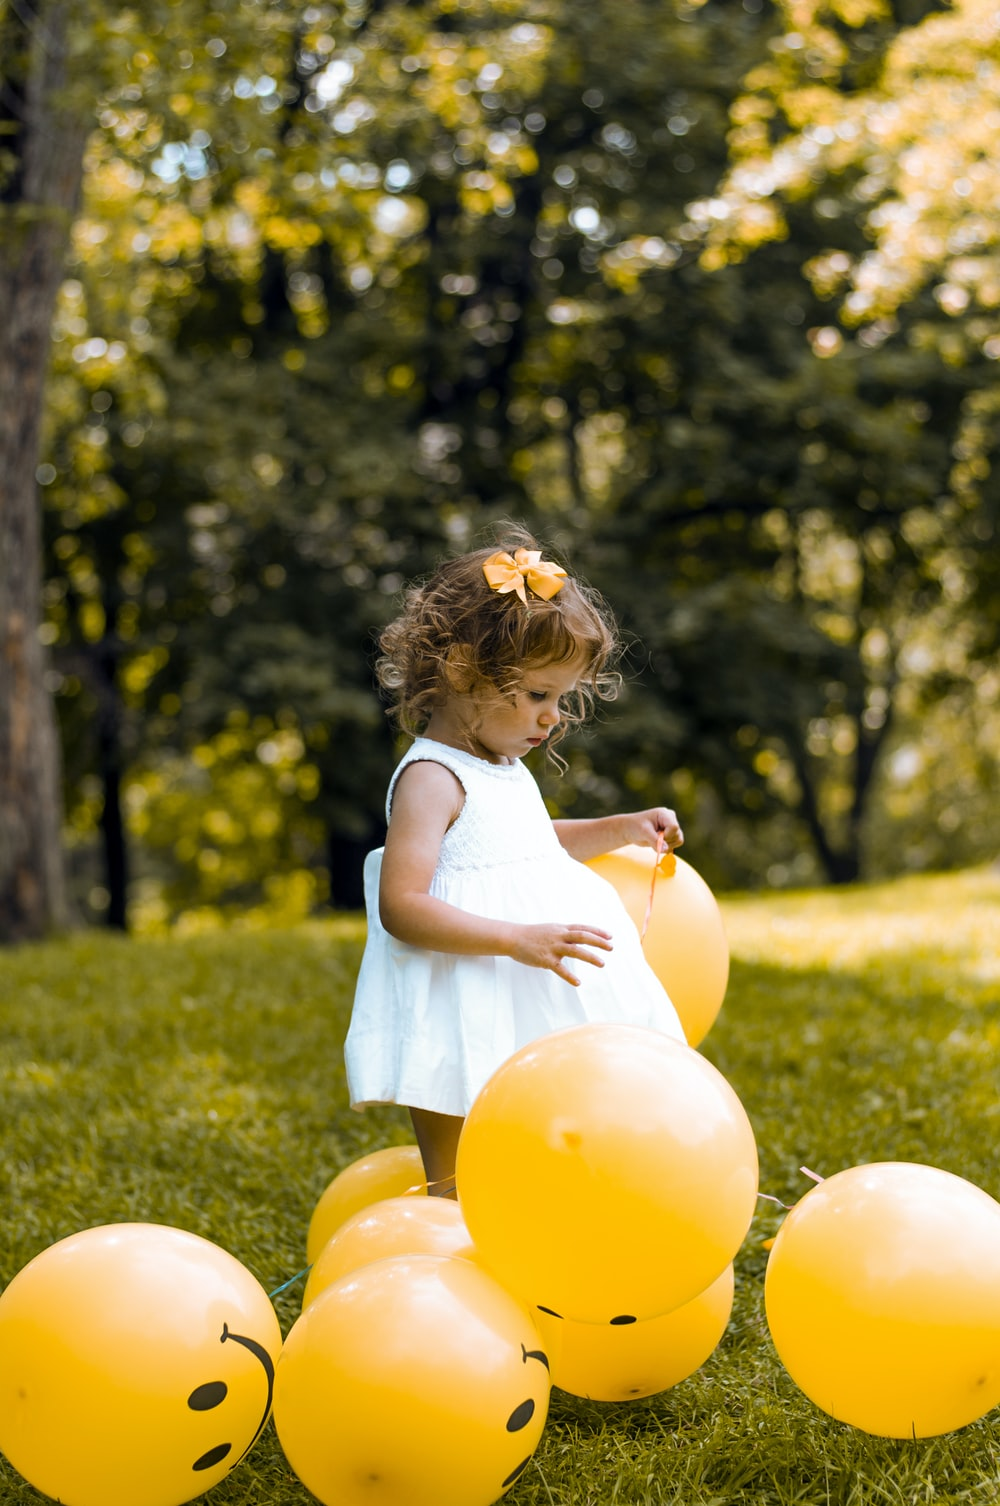 girl wearing white sleeveless dress beside balloons